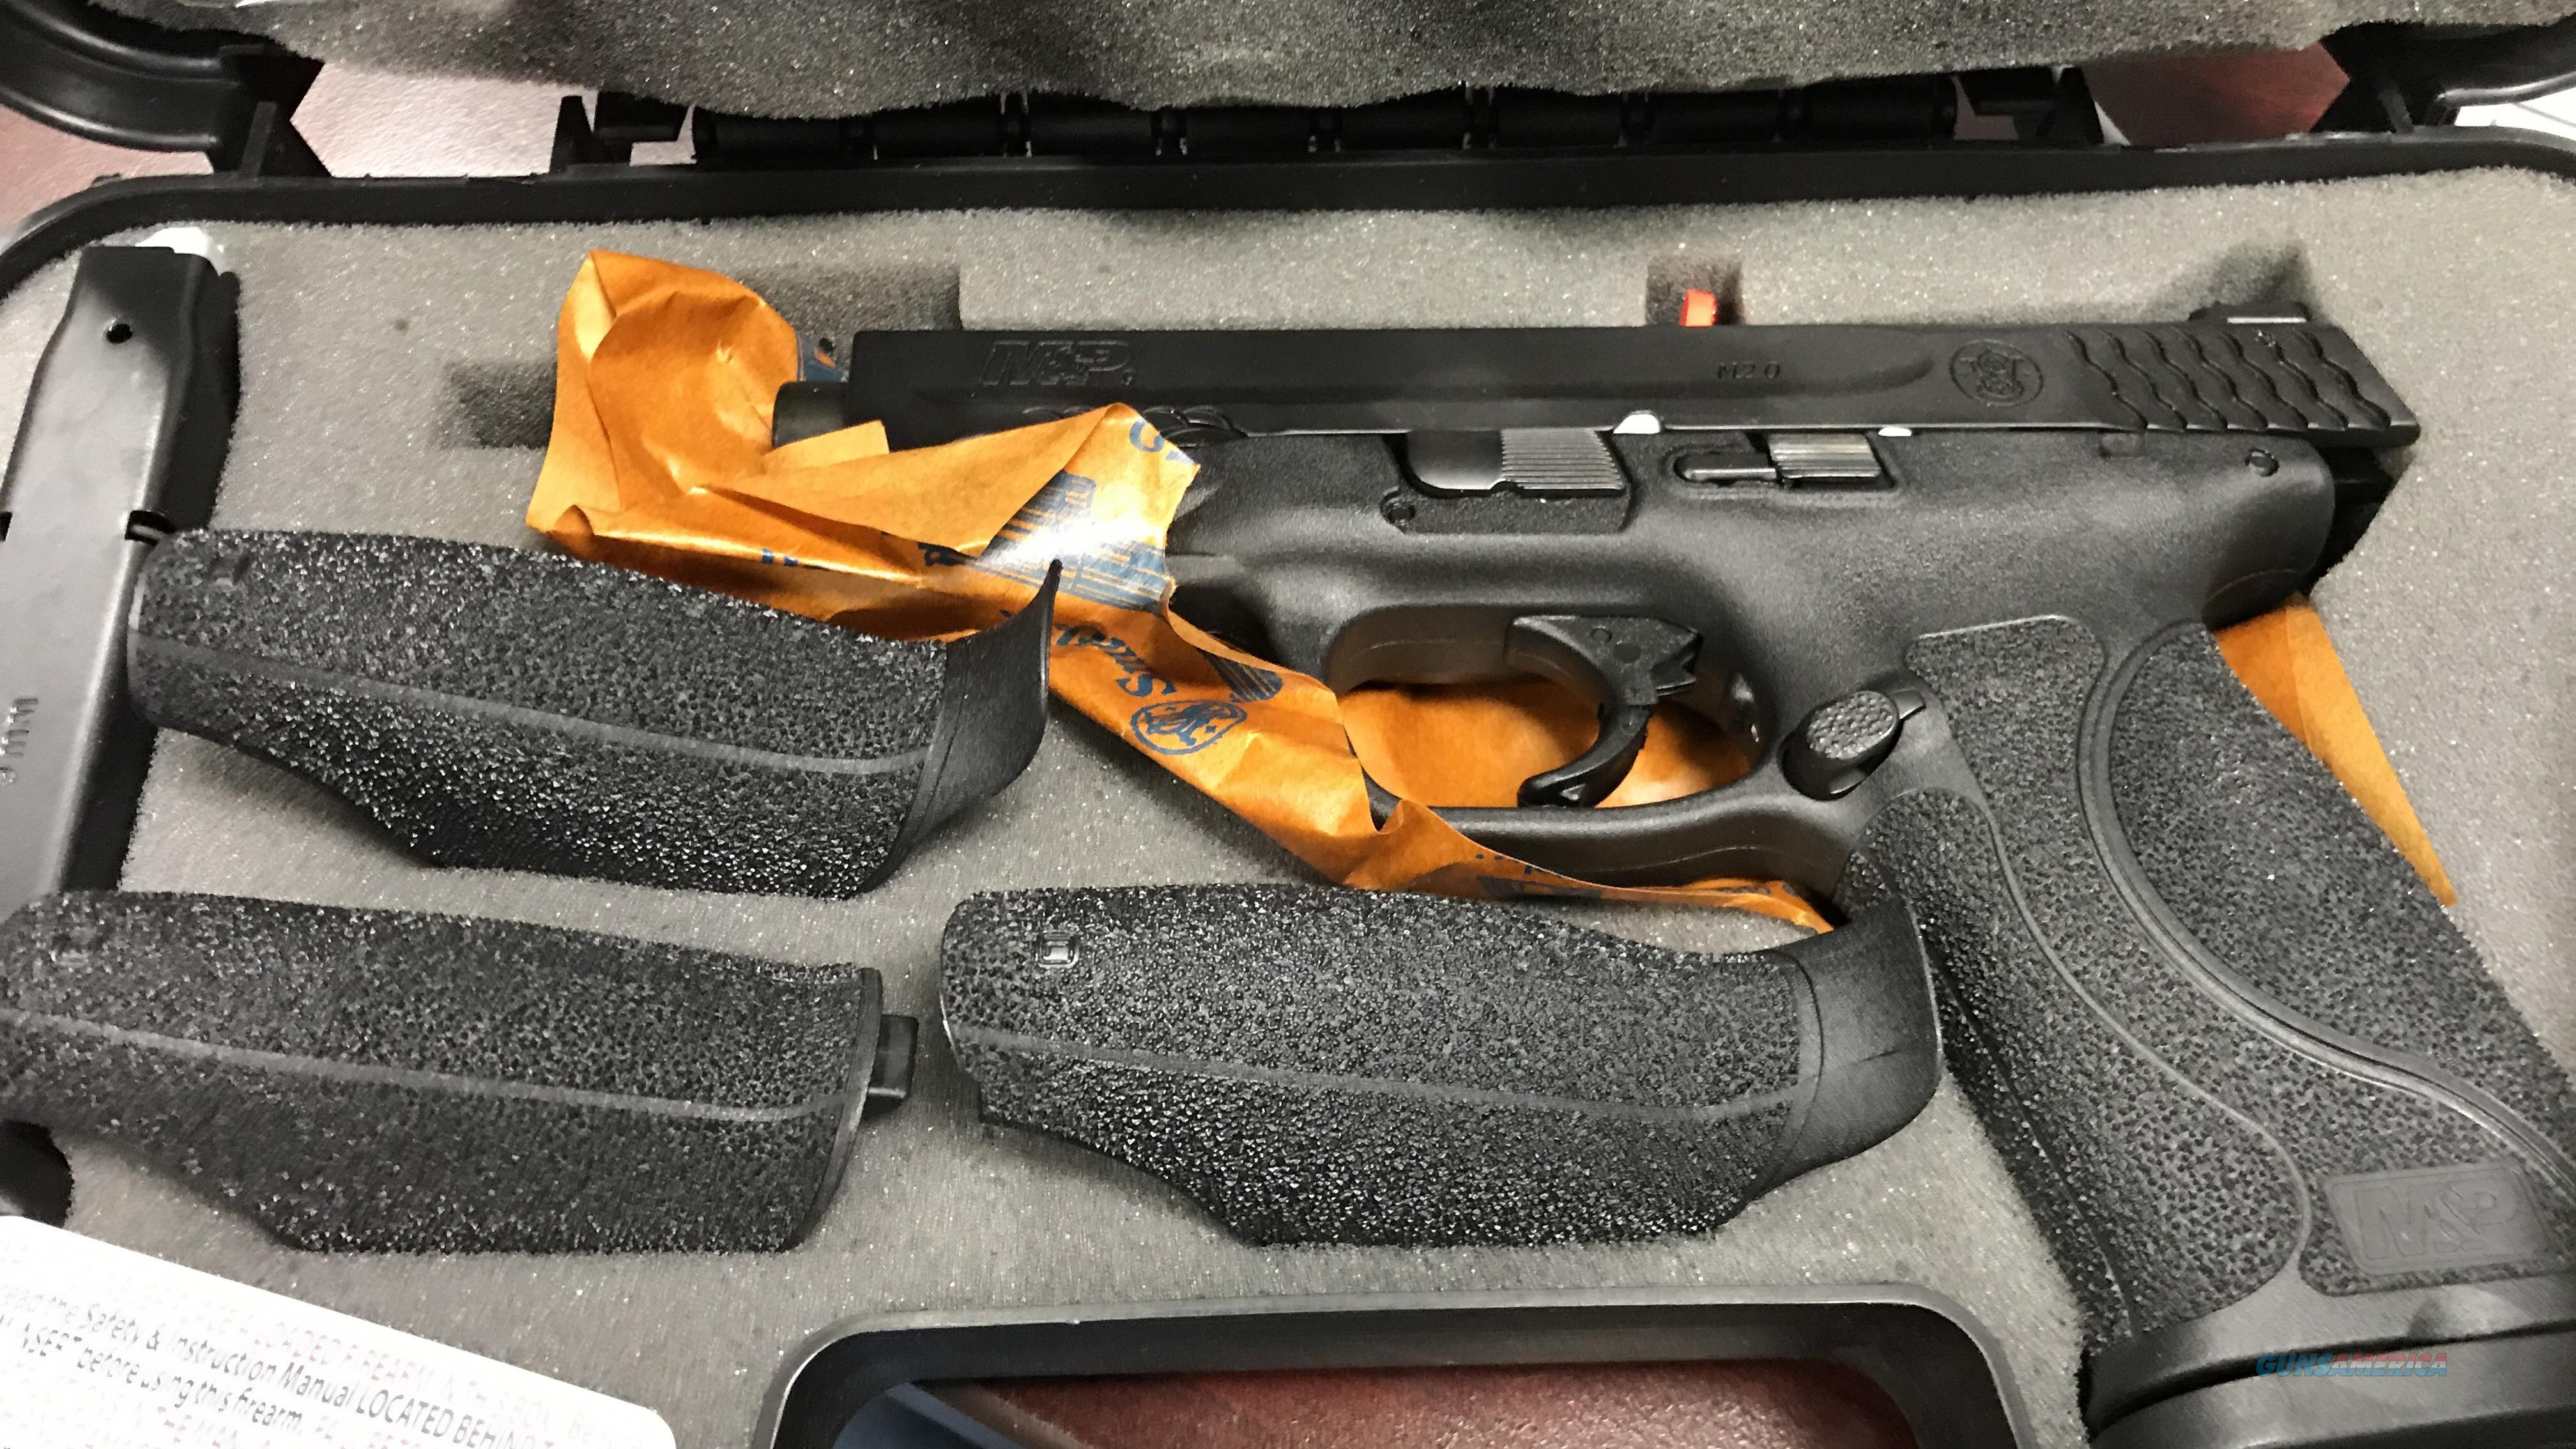 SMITH & WESSON M&P 2.0 9MM (FREE SHIPPING)  Guns > Pistols > Smith & Wesson Pistols - Autos > Polymer Frame